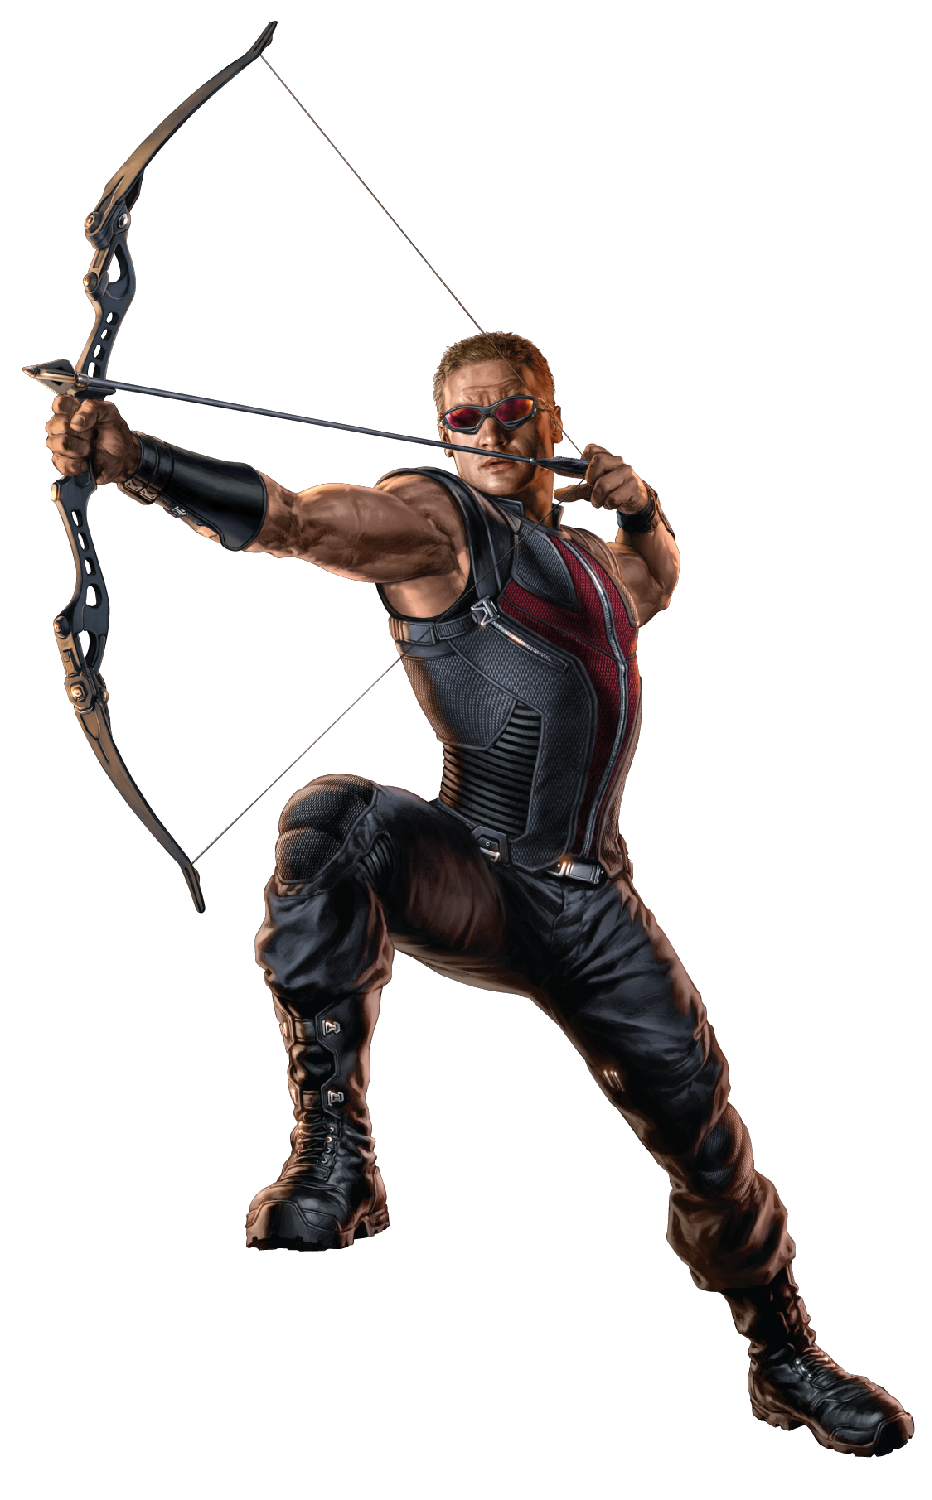 PNG File Name: Hawkeye PNG Transparent - Hawkeye PNG